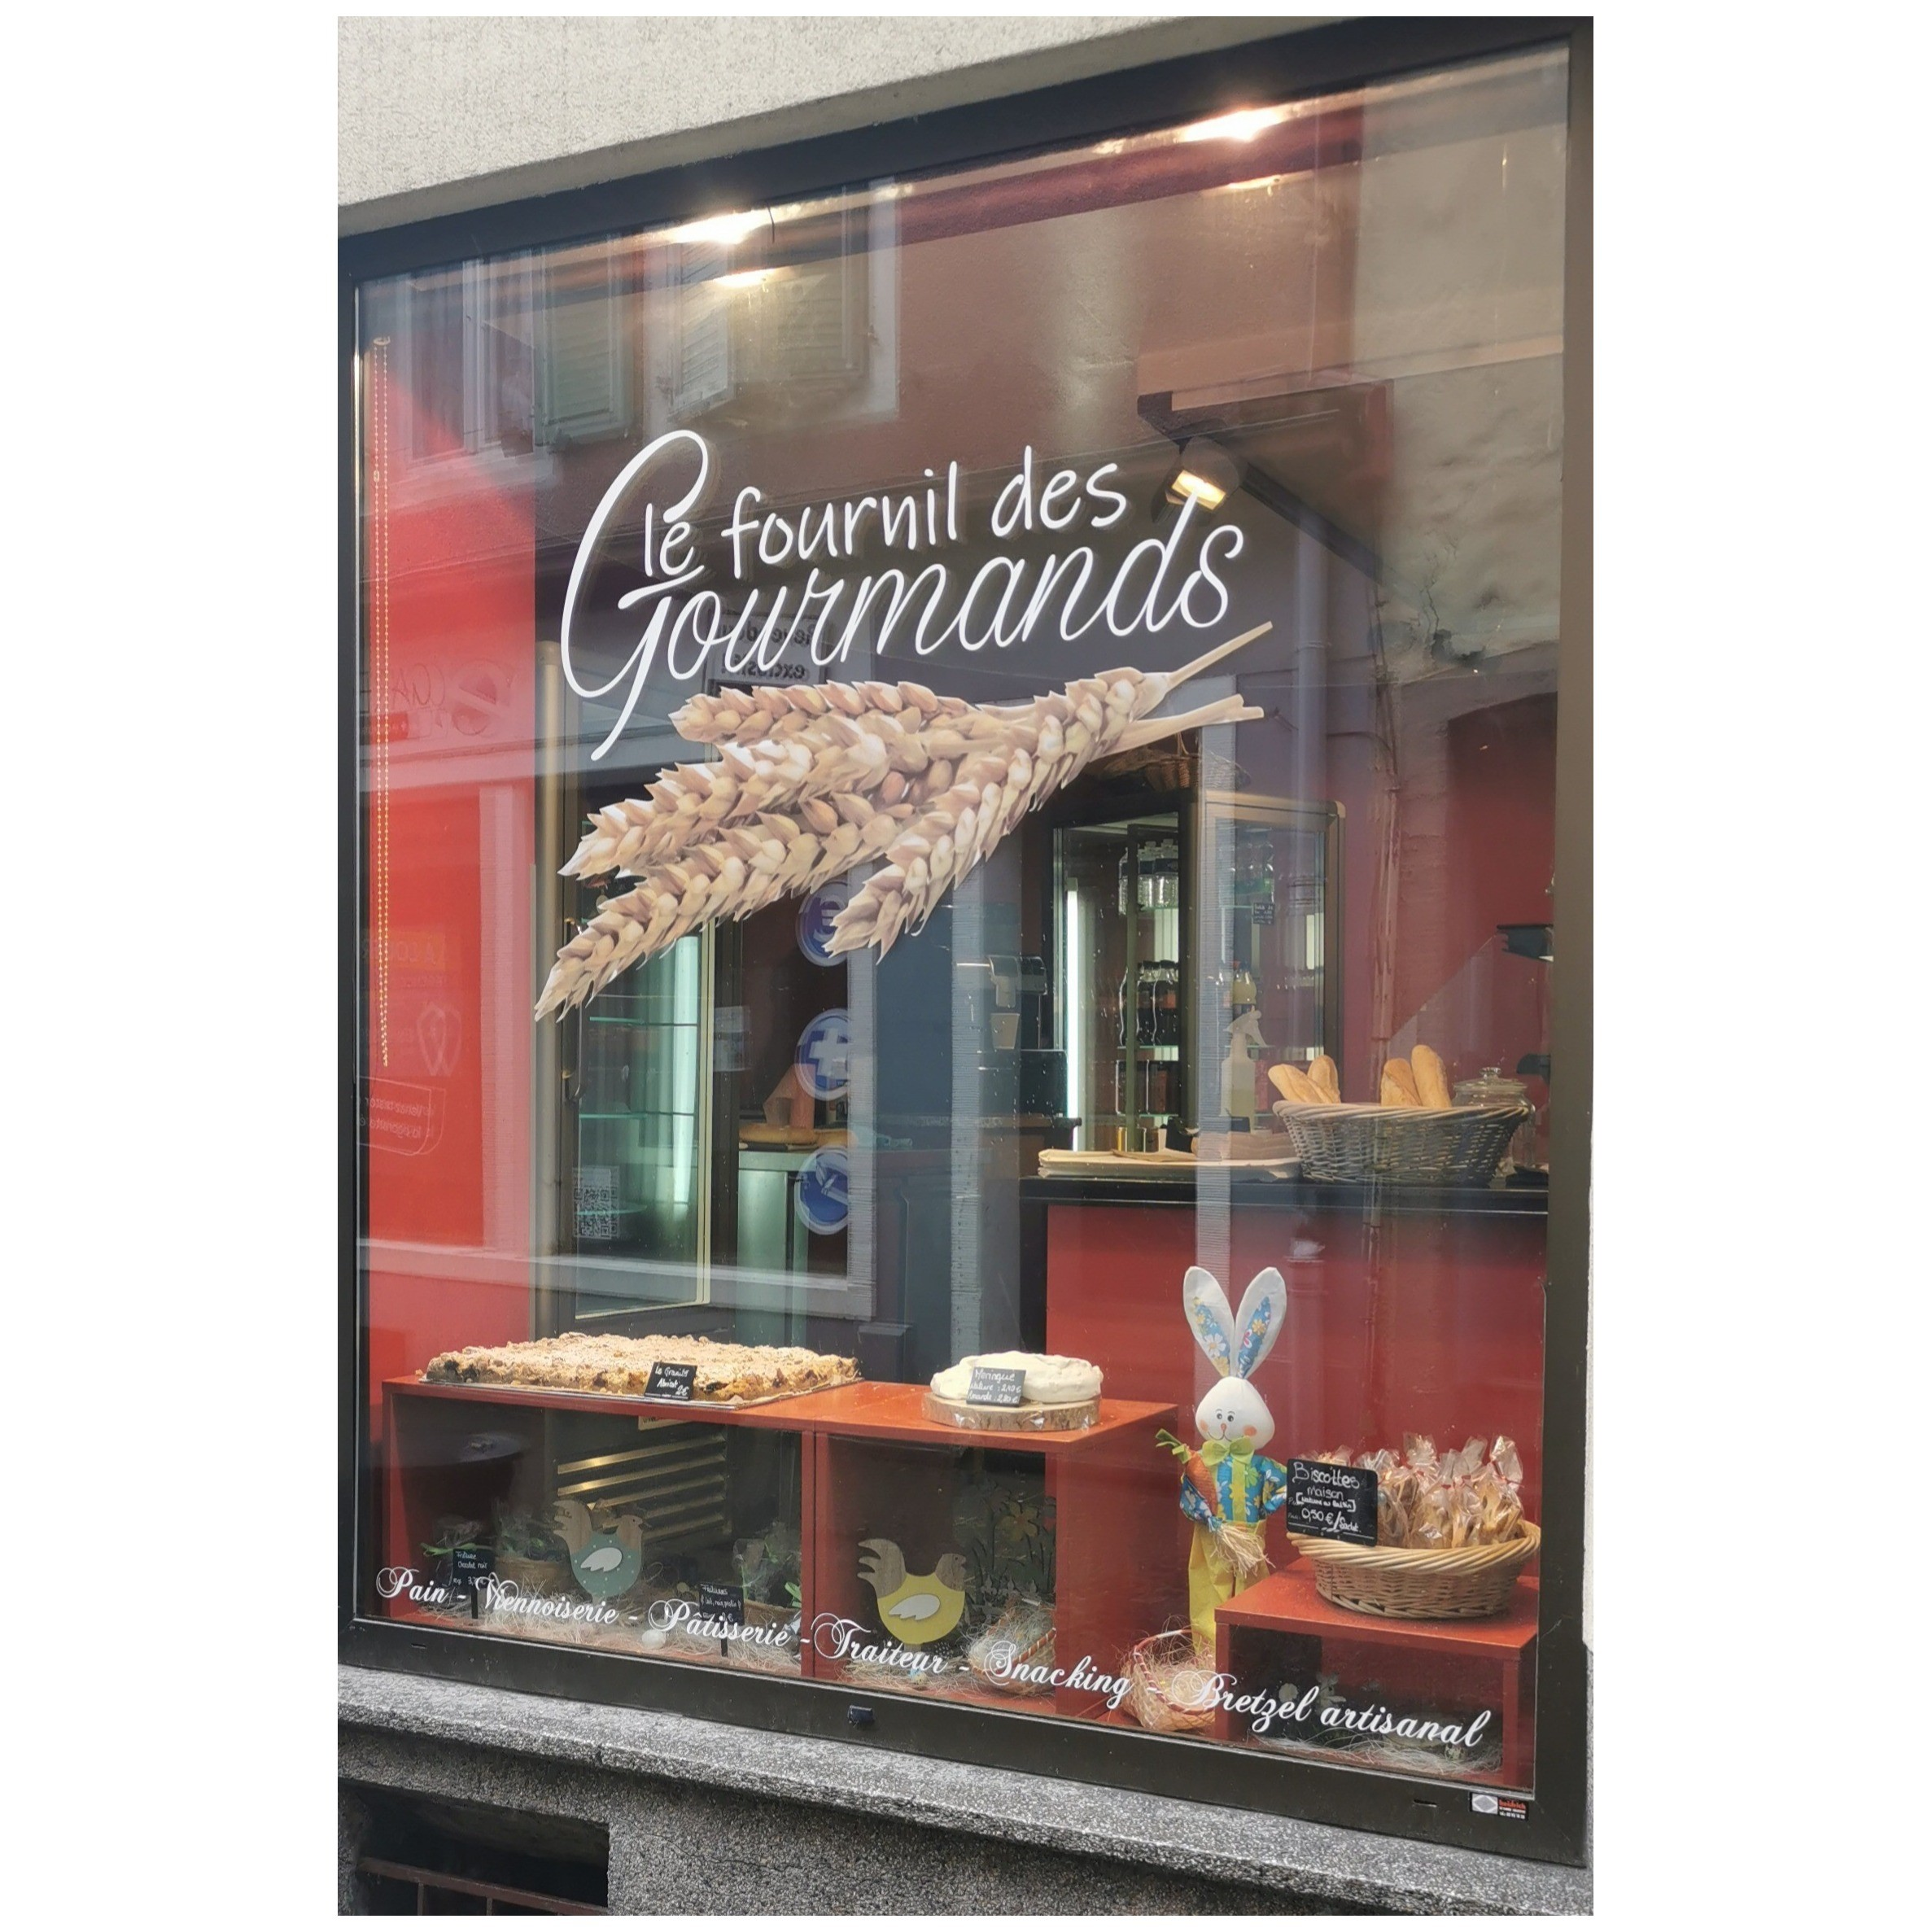 Le Fournil des Gourmands